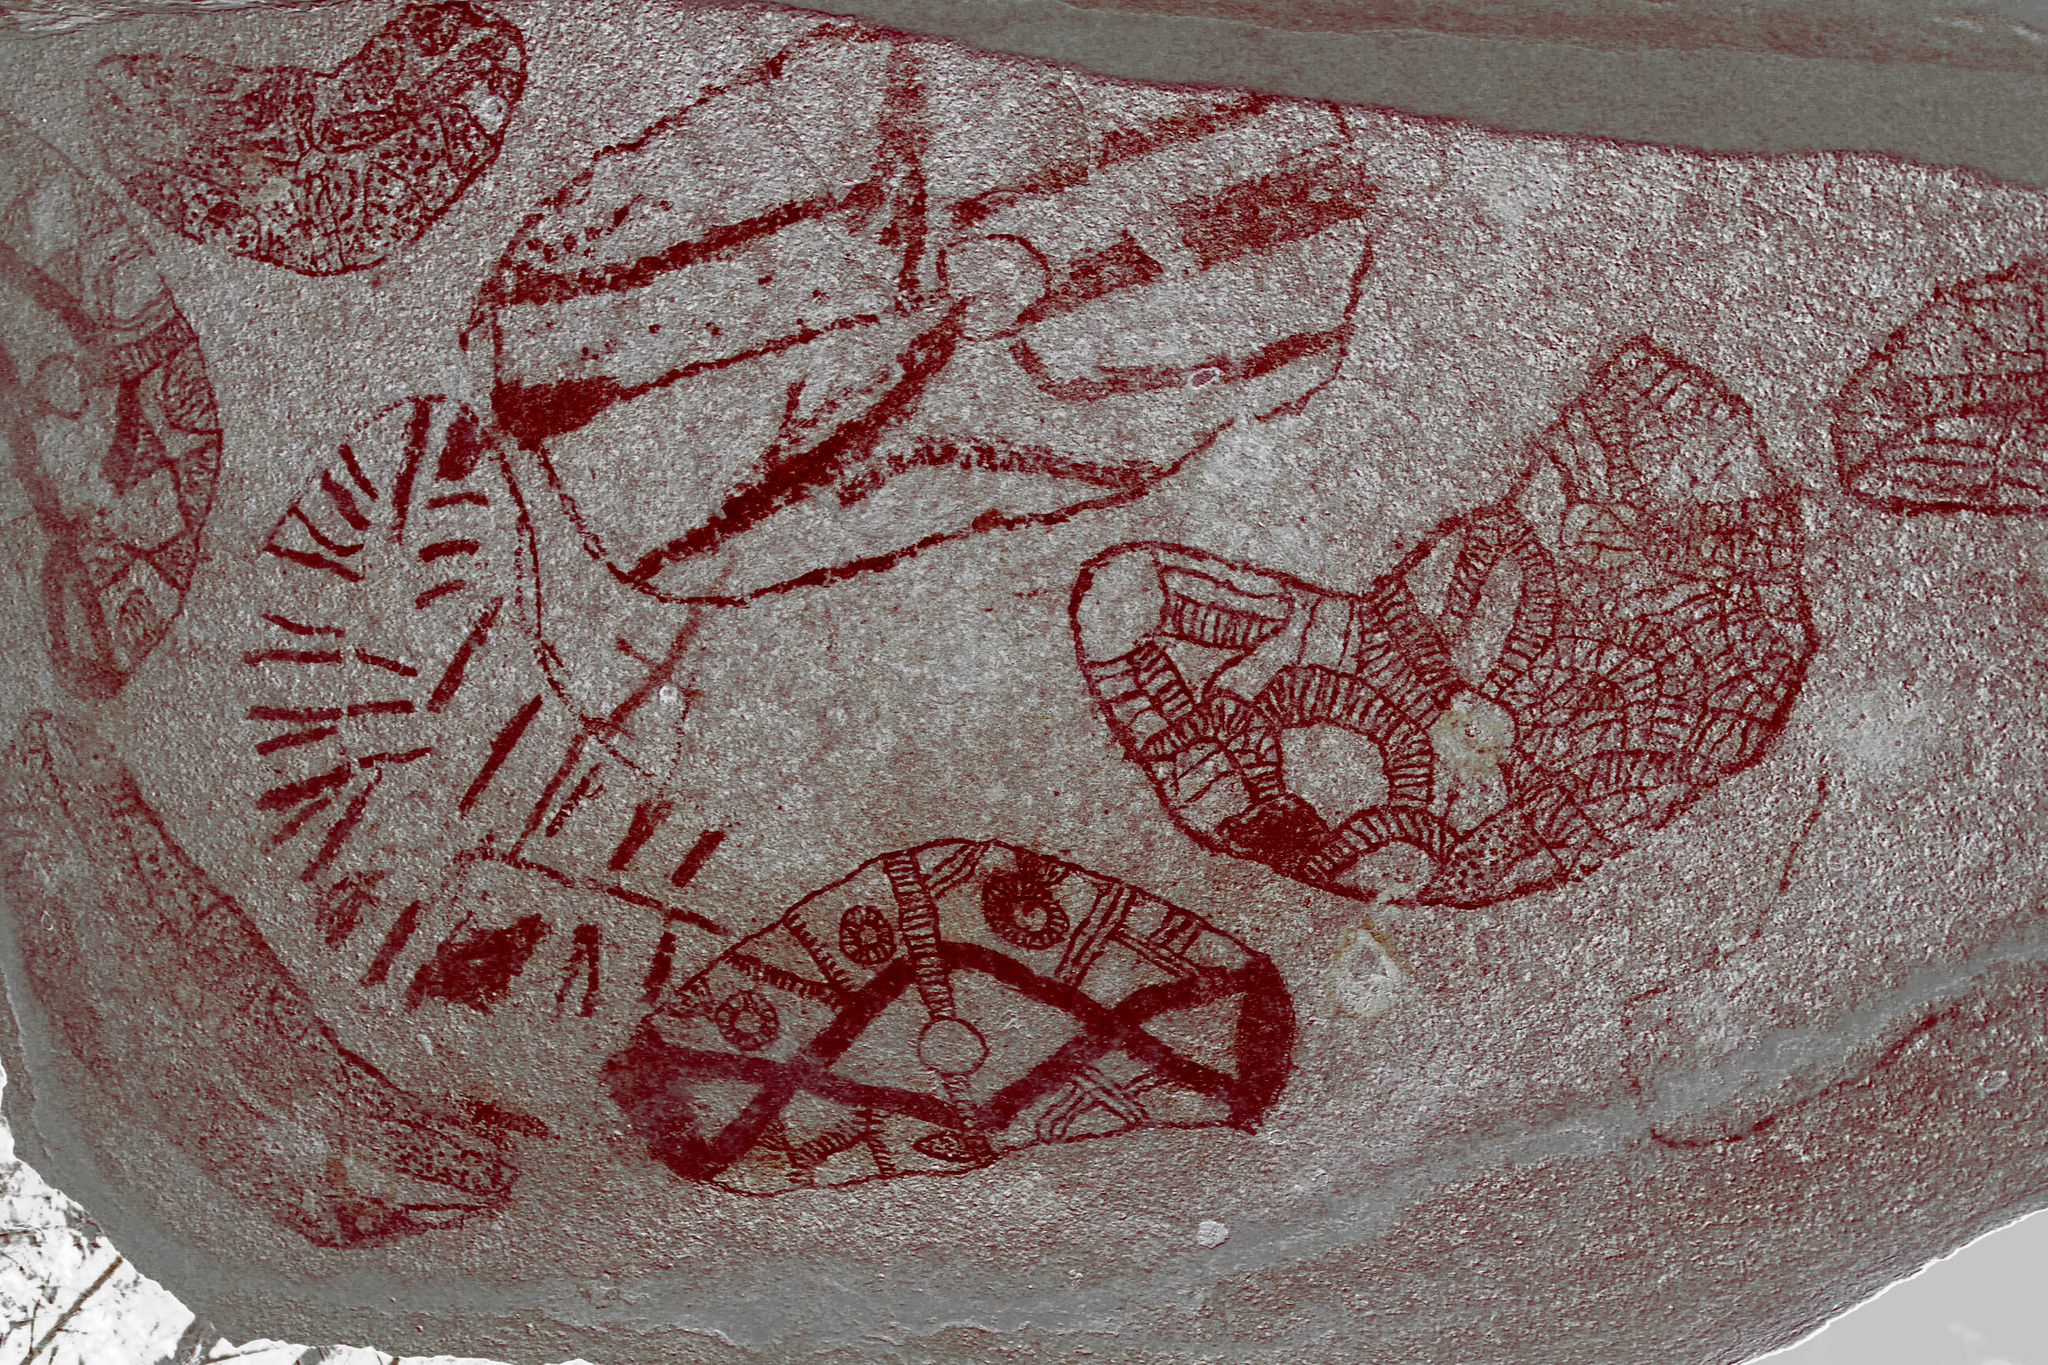 Clevdon aboriginal rock art - software enhanced